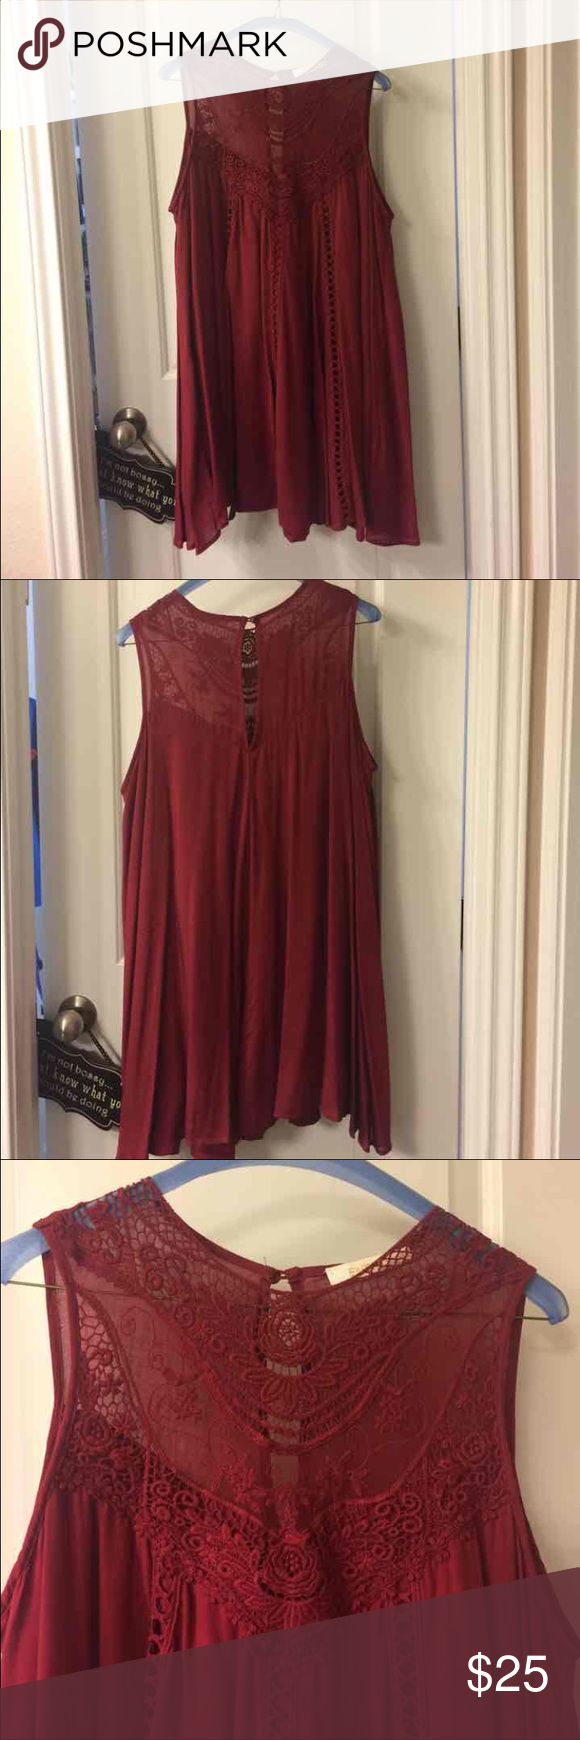 Gorgeous burgundy/wine baby doll dress Flirty and fun size small dress. SUPER comfy and can dress up with heels or throw on some boots. Worn once in excellent condition. Dresses Mini